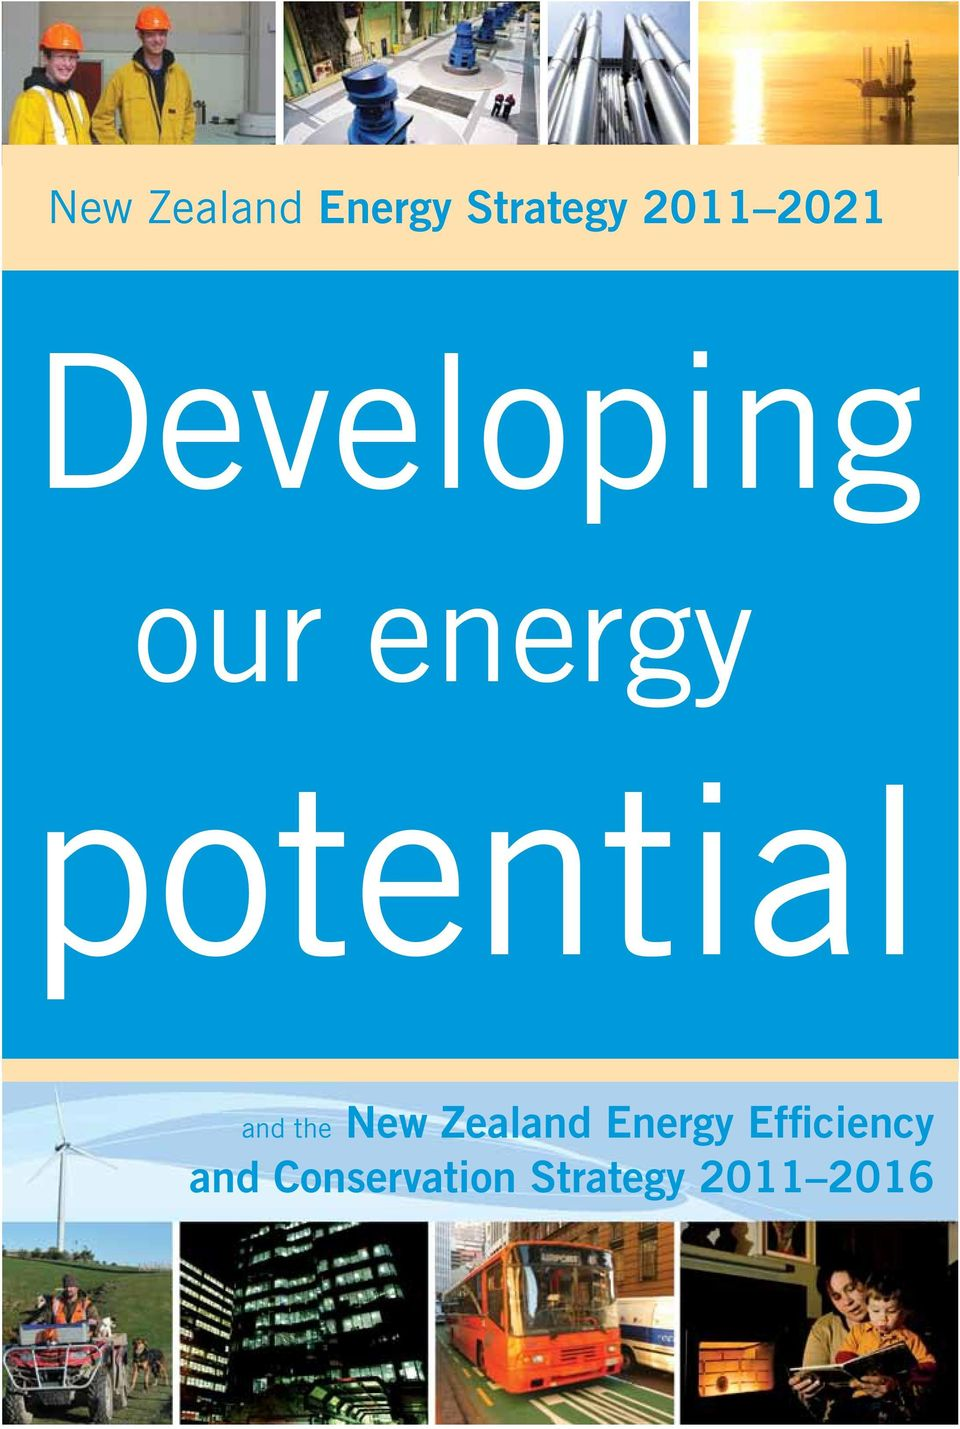 potential and the New Zealand